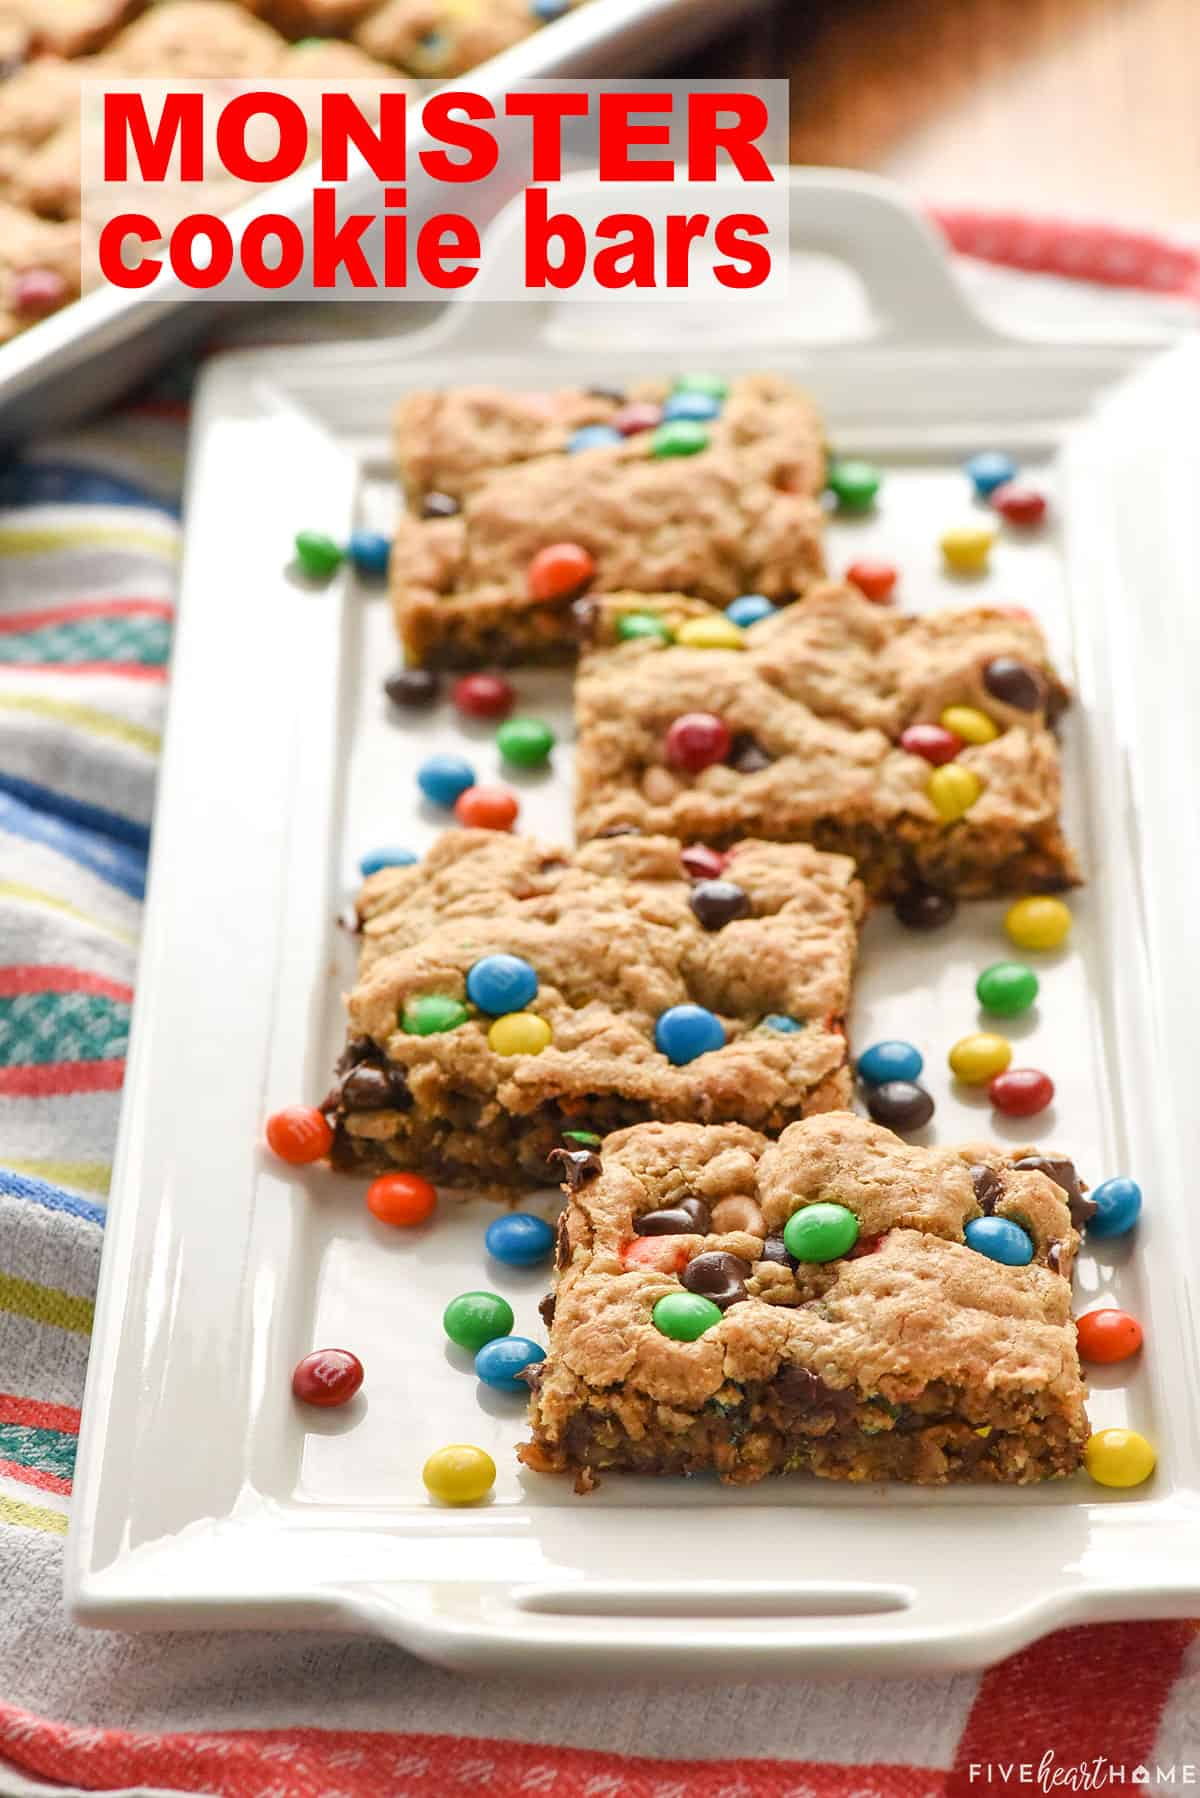 Monster Cookie Bars with text overlay.